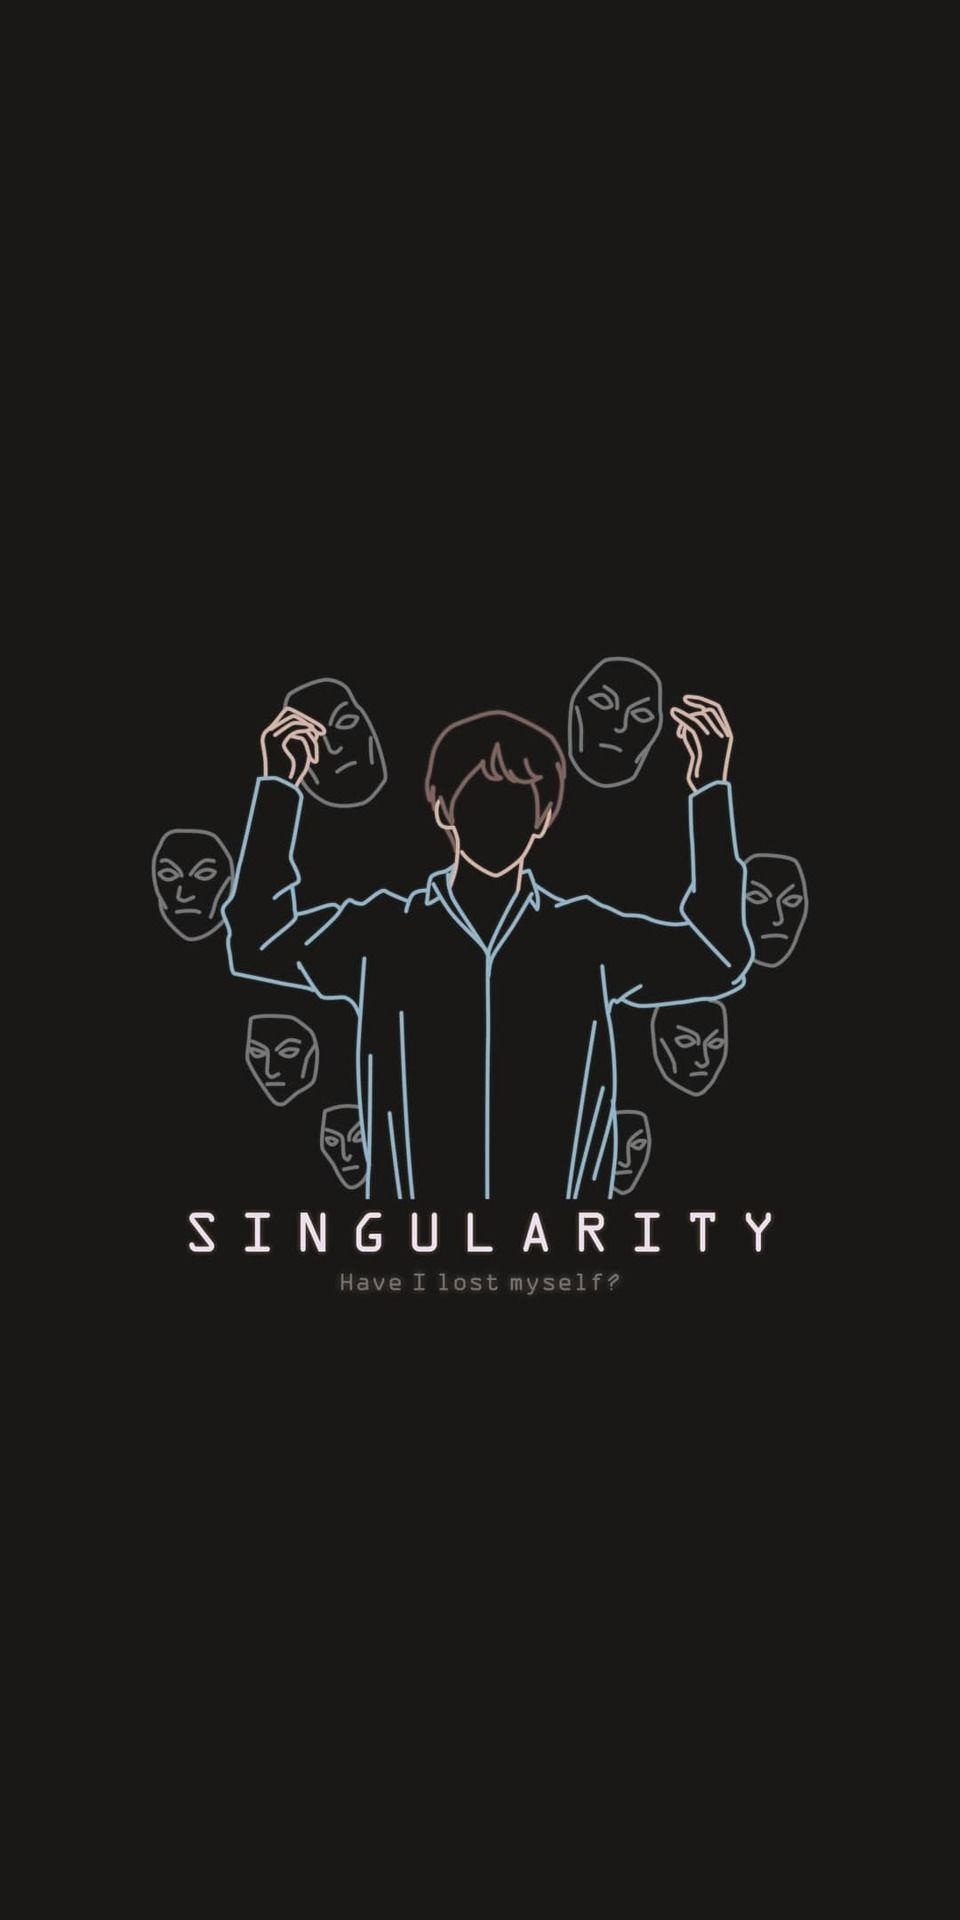 Singularity V Wallpaper Bts In 2019 Bts